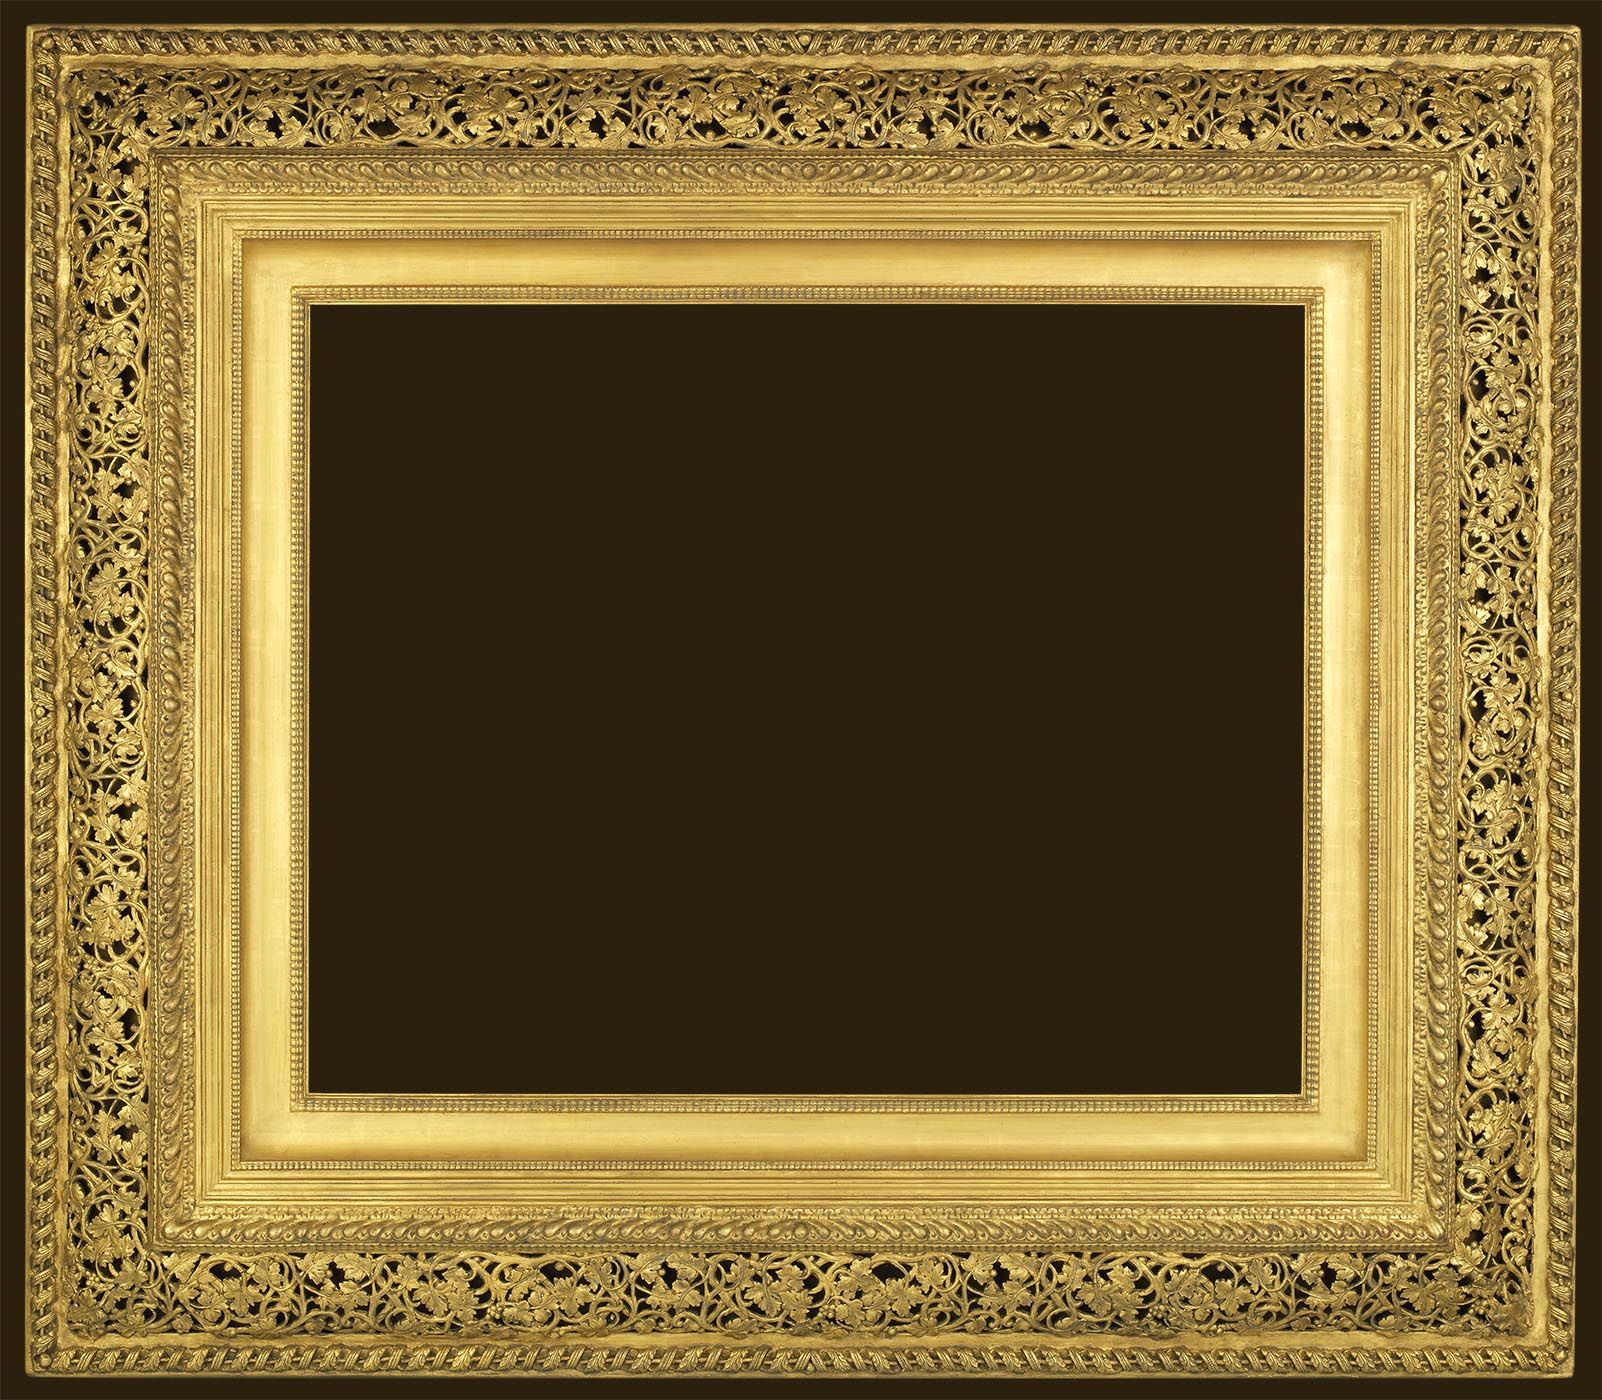 American 19th Century C 1890 Designed By The Architect Stanford White 1853 1906 45 X 35 3 4 X 12 1 2 Diegosalazar Co Antique Frames Photo Frame Frame